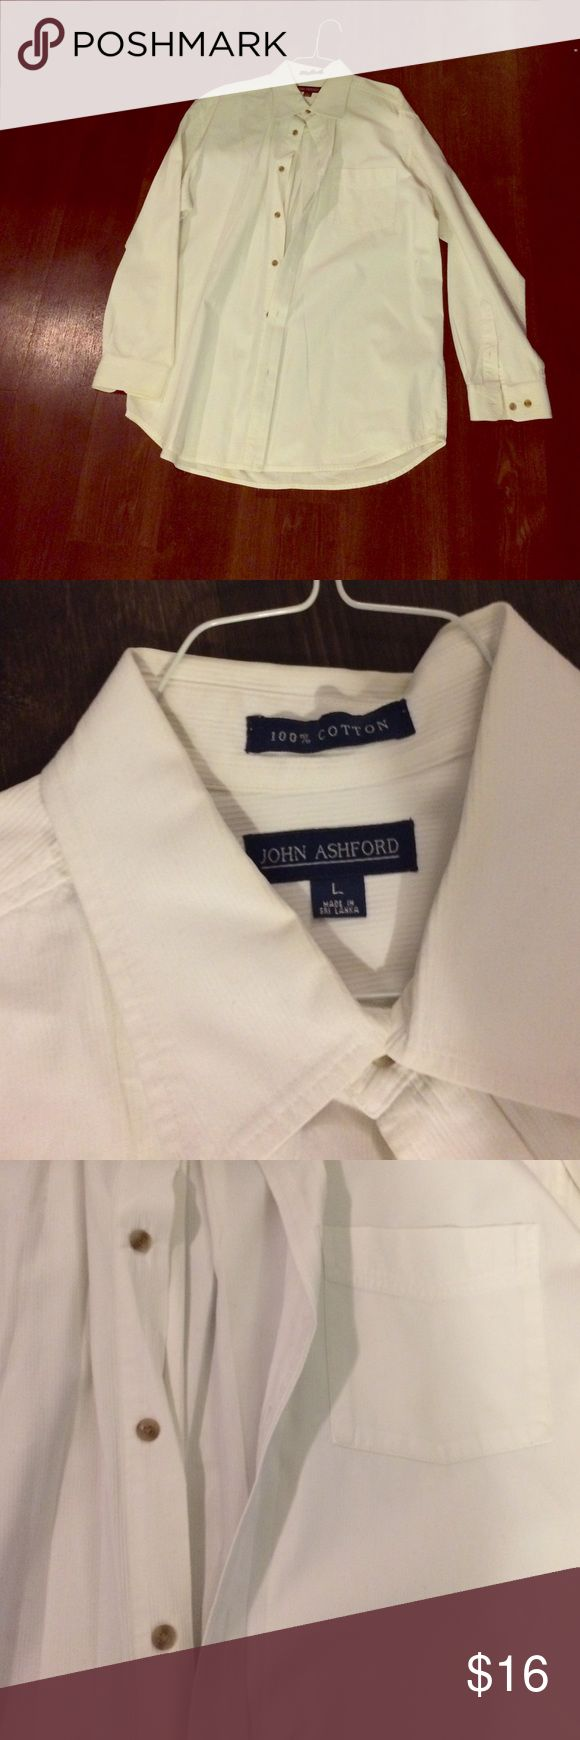 Men's large John Ashford dress shirt in white This is a crisp, quality white John Ashcroft brand dress shirt. Like new quality, no stains or flaws. Has been professionally cleaned and starched. Great buy. 👨🏽 John Ashford Shirts Dress Shirts